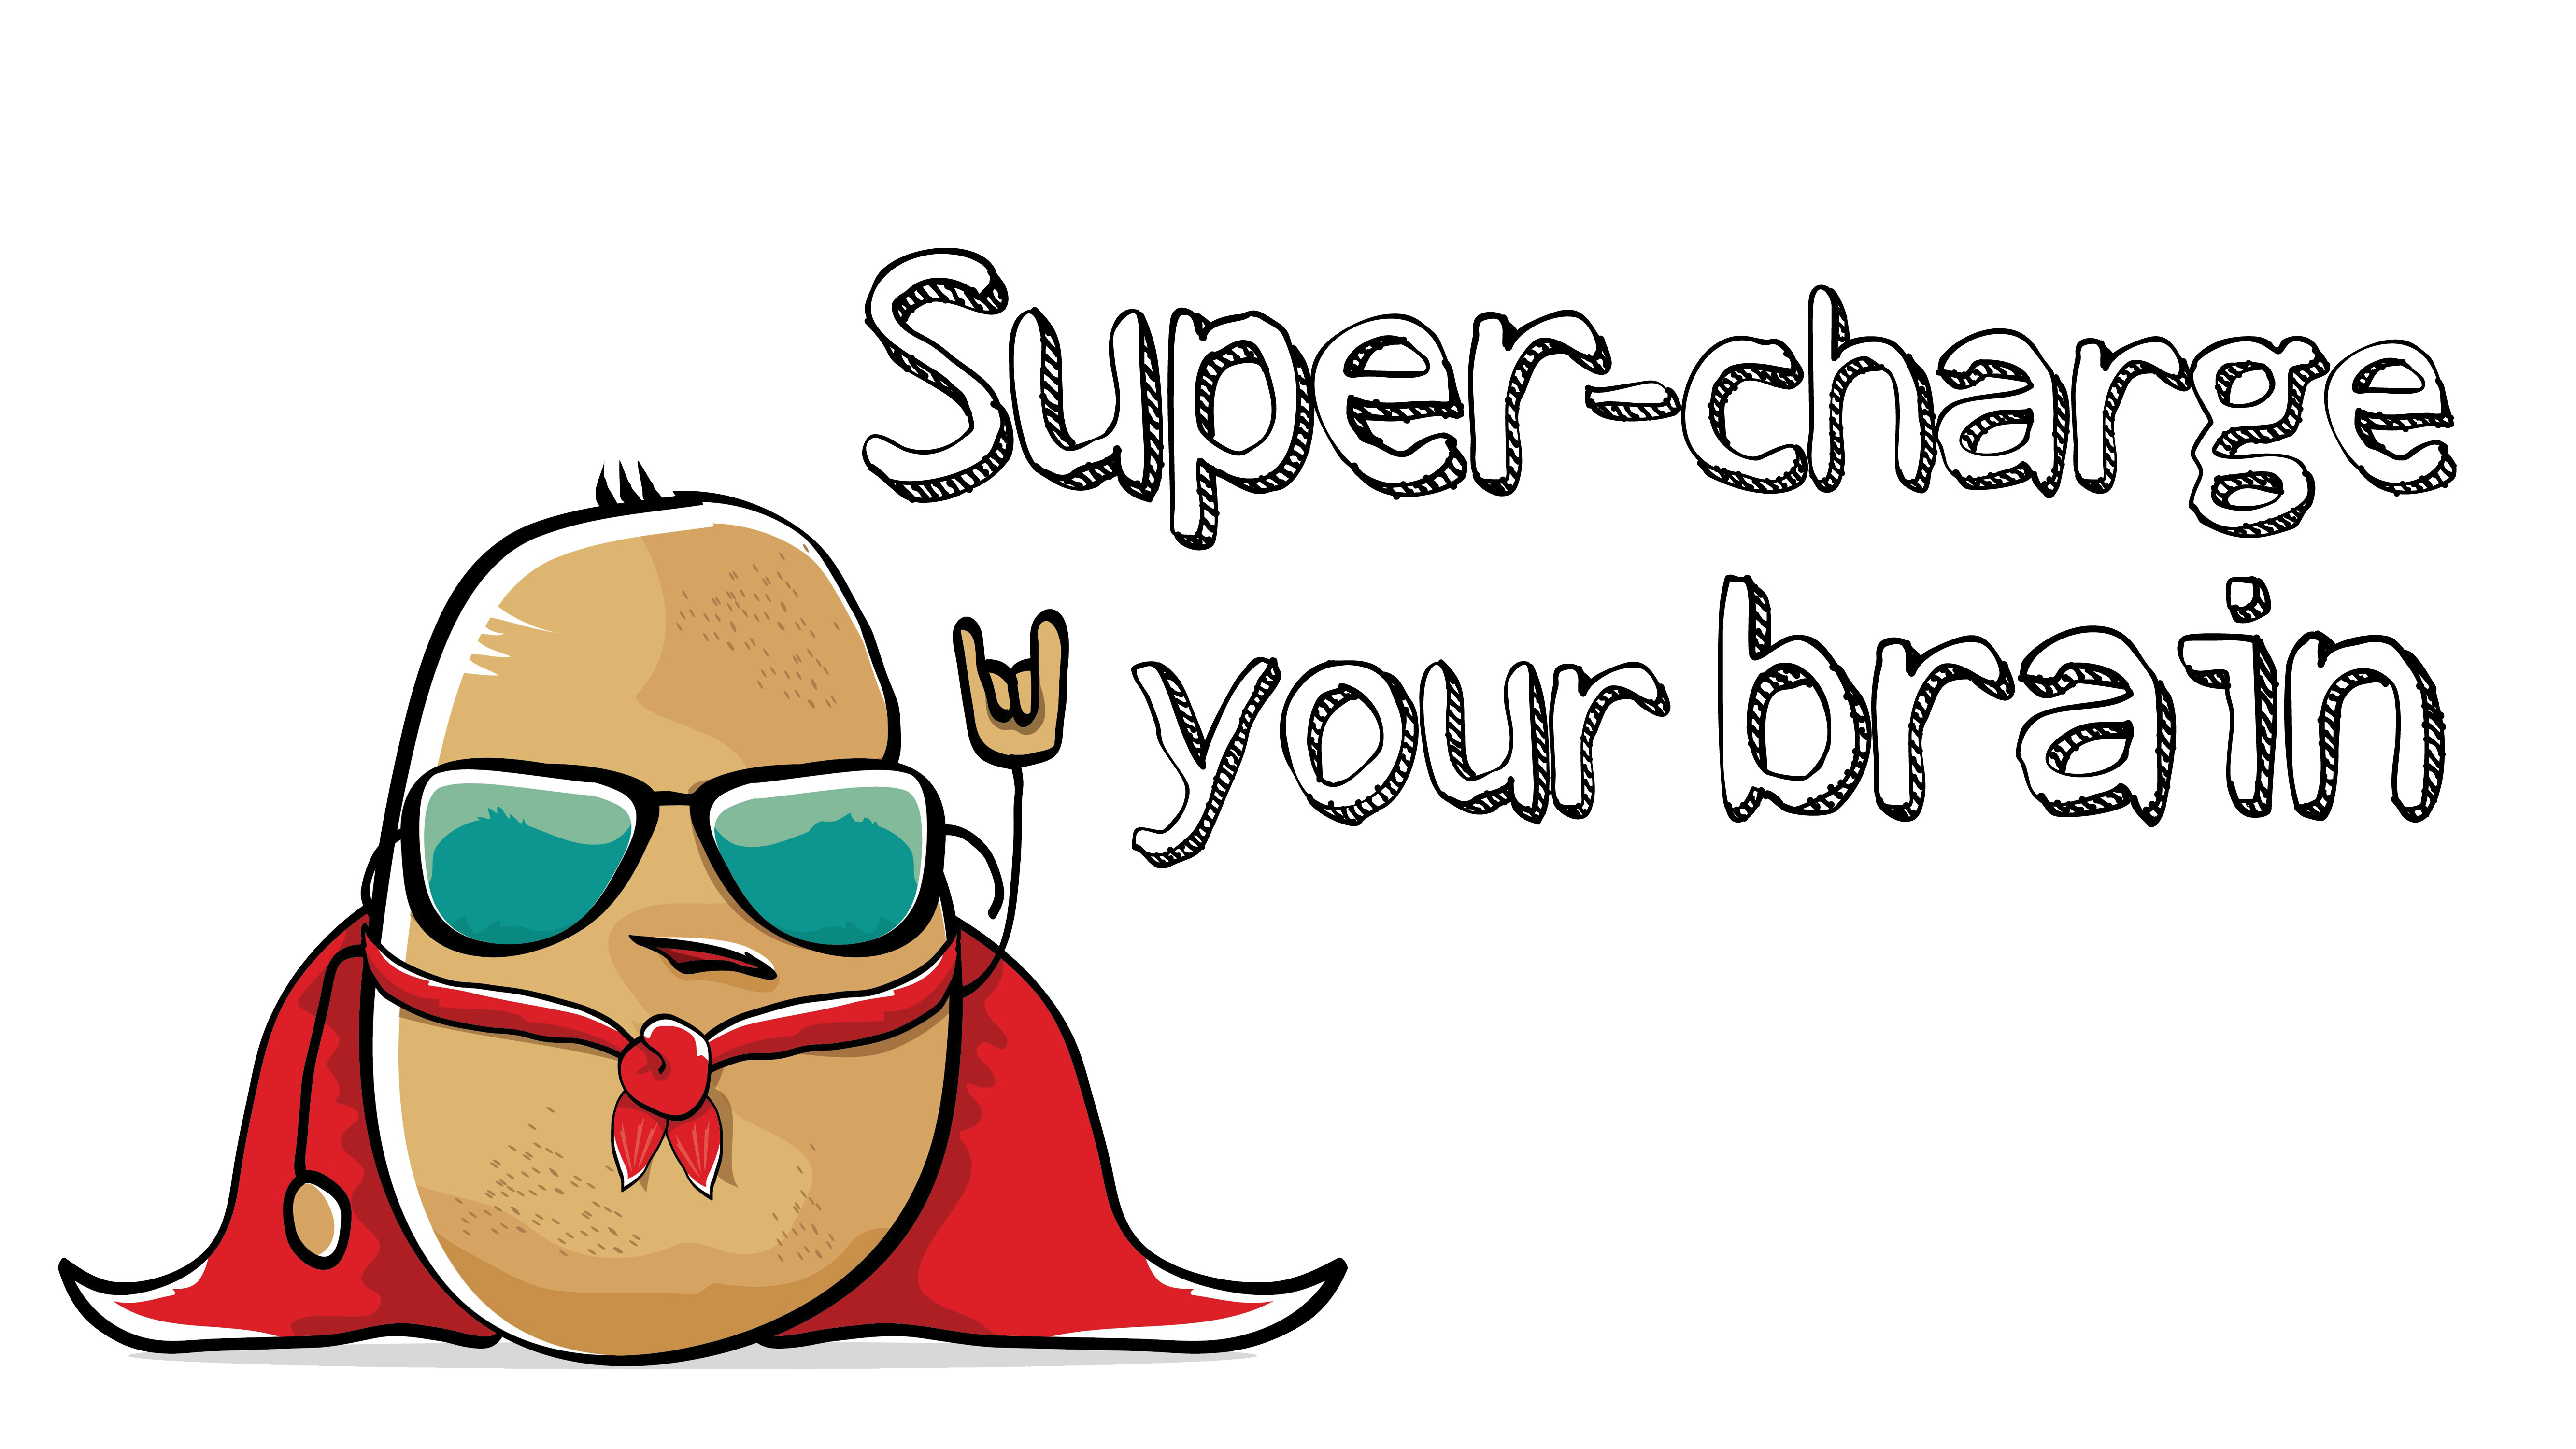 Super-charge your brain Apr 6